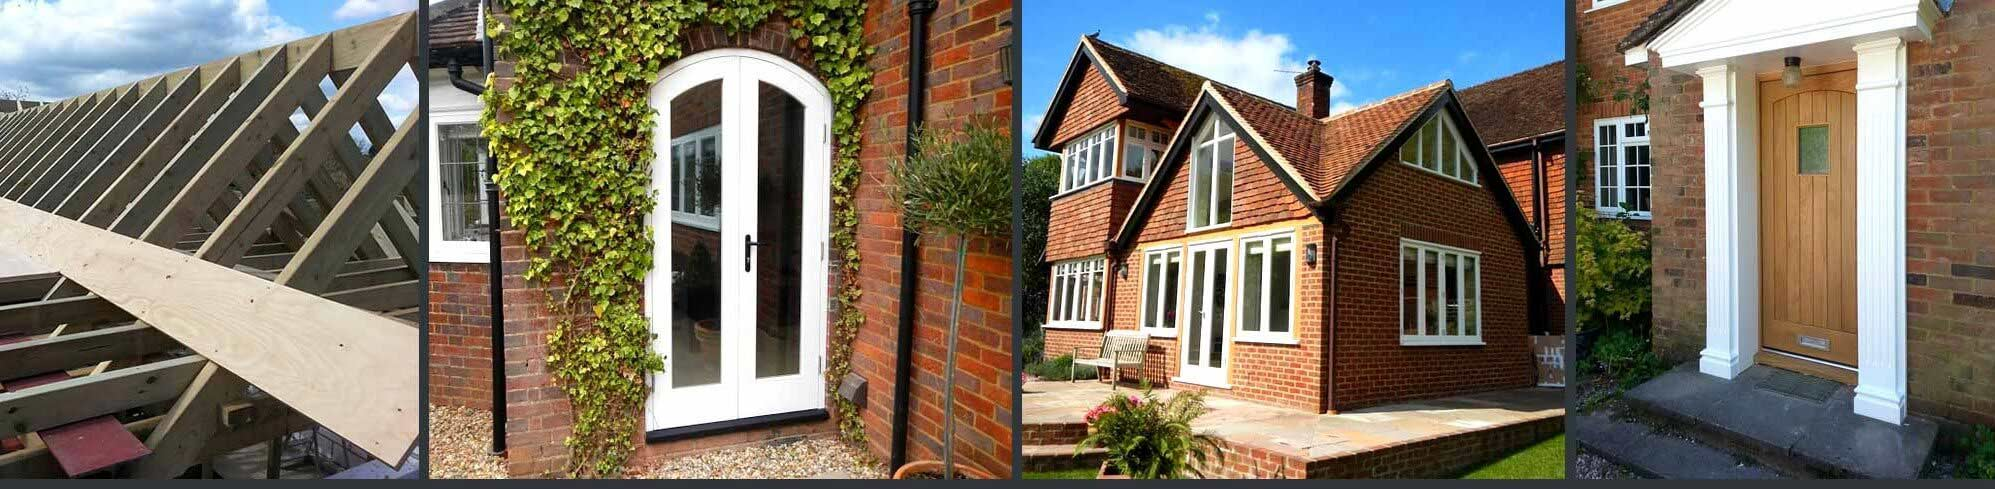 Timber roof, windows and doors